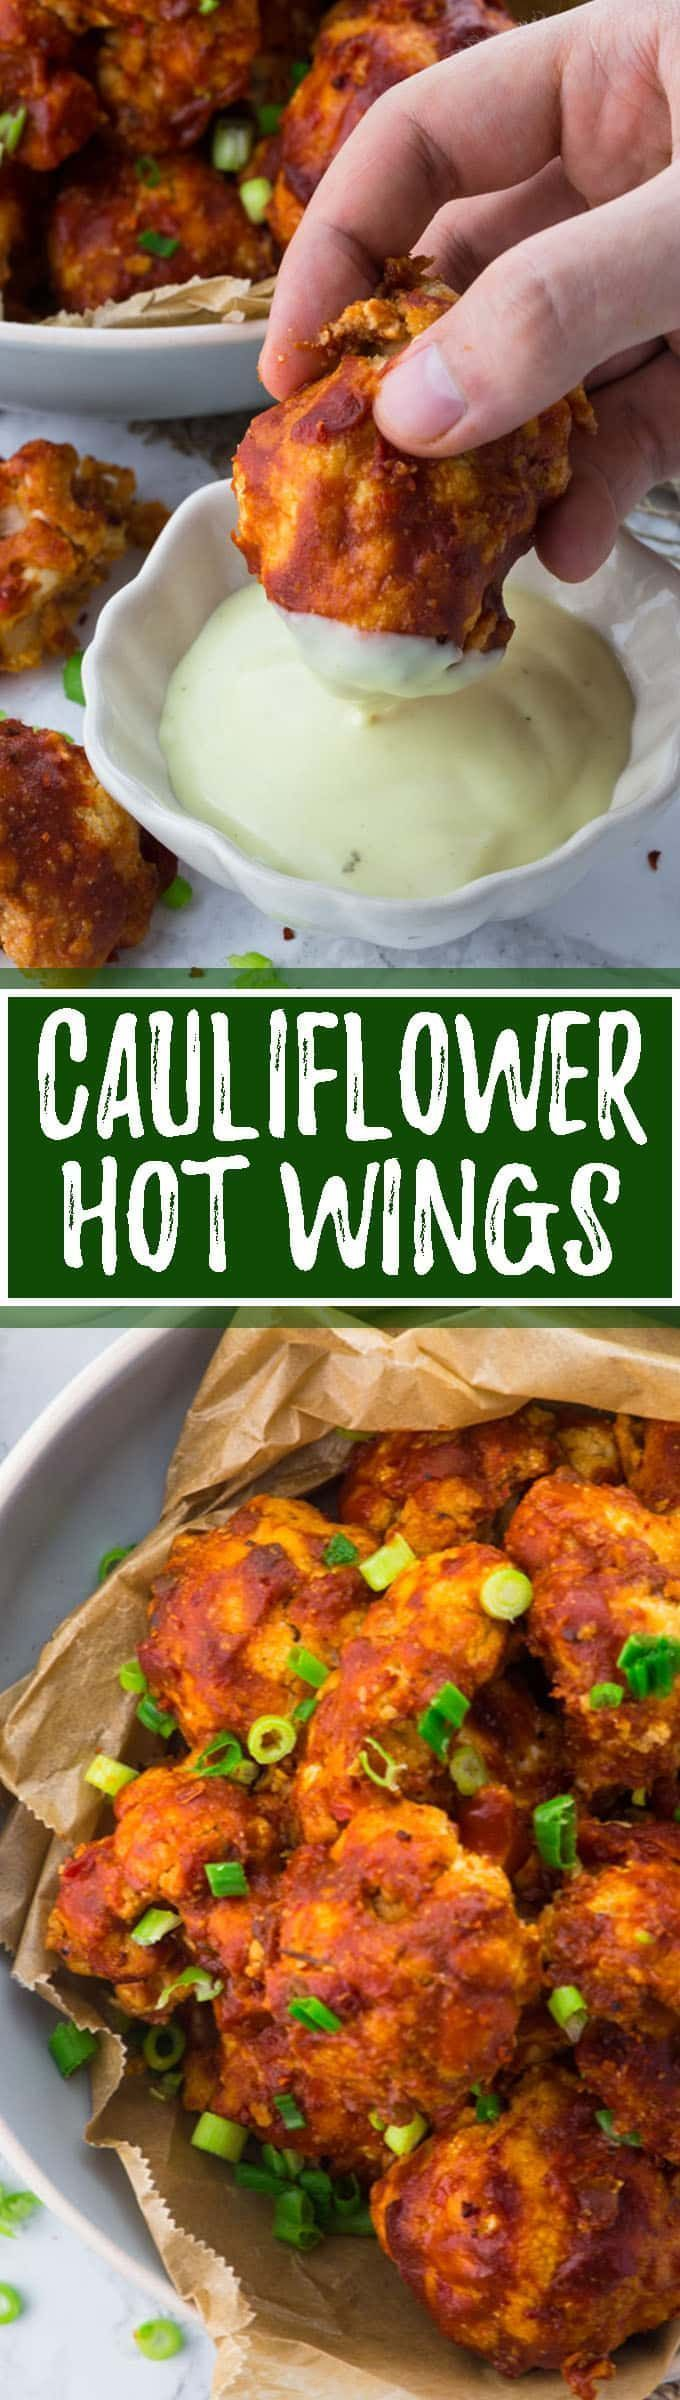 Vegan Cauliflower Hot Wings More Vegetarian Food Recipes